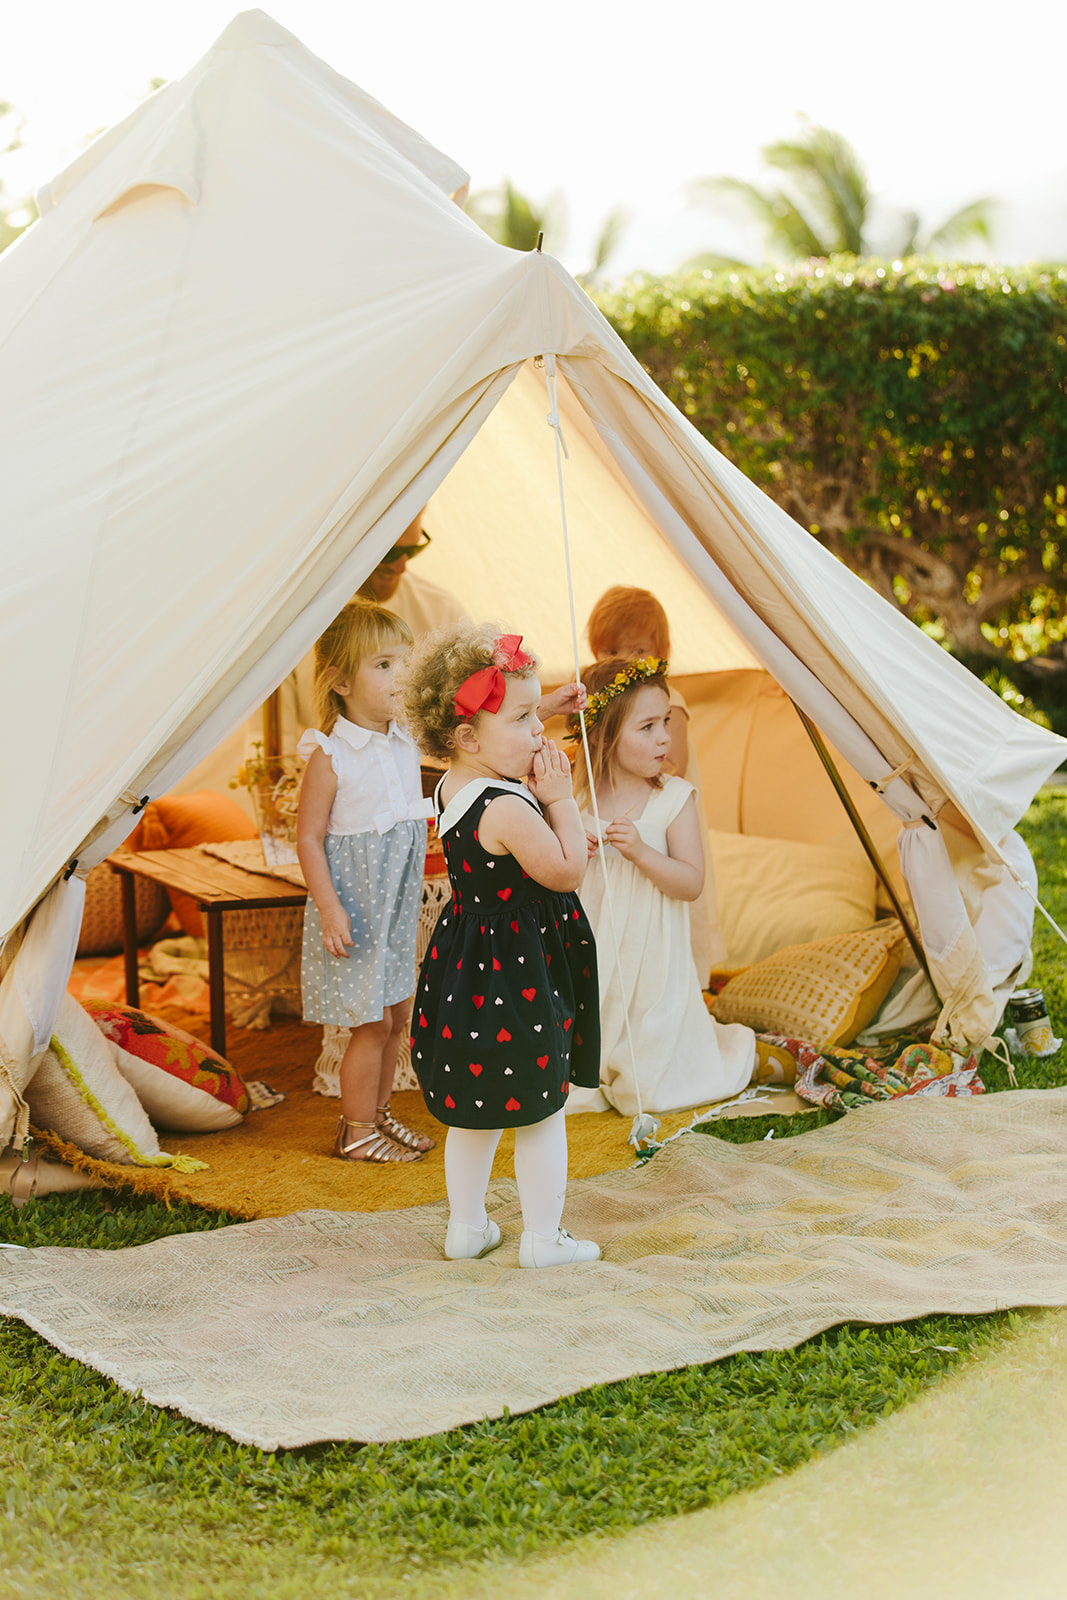 kids playing in wedding tent